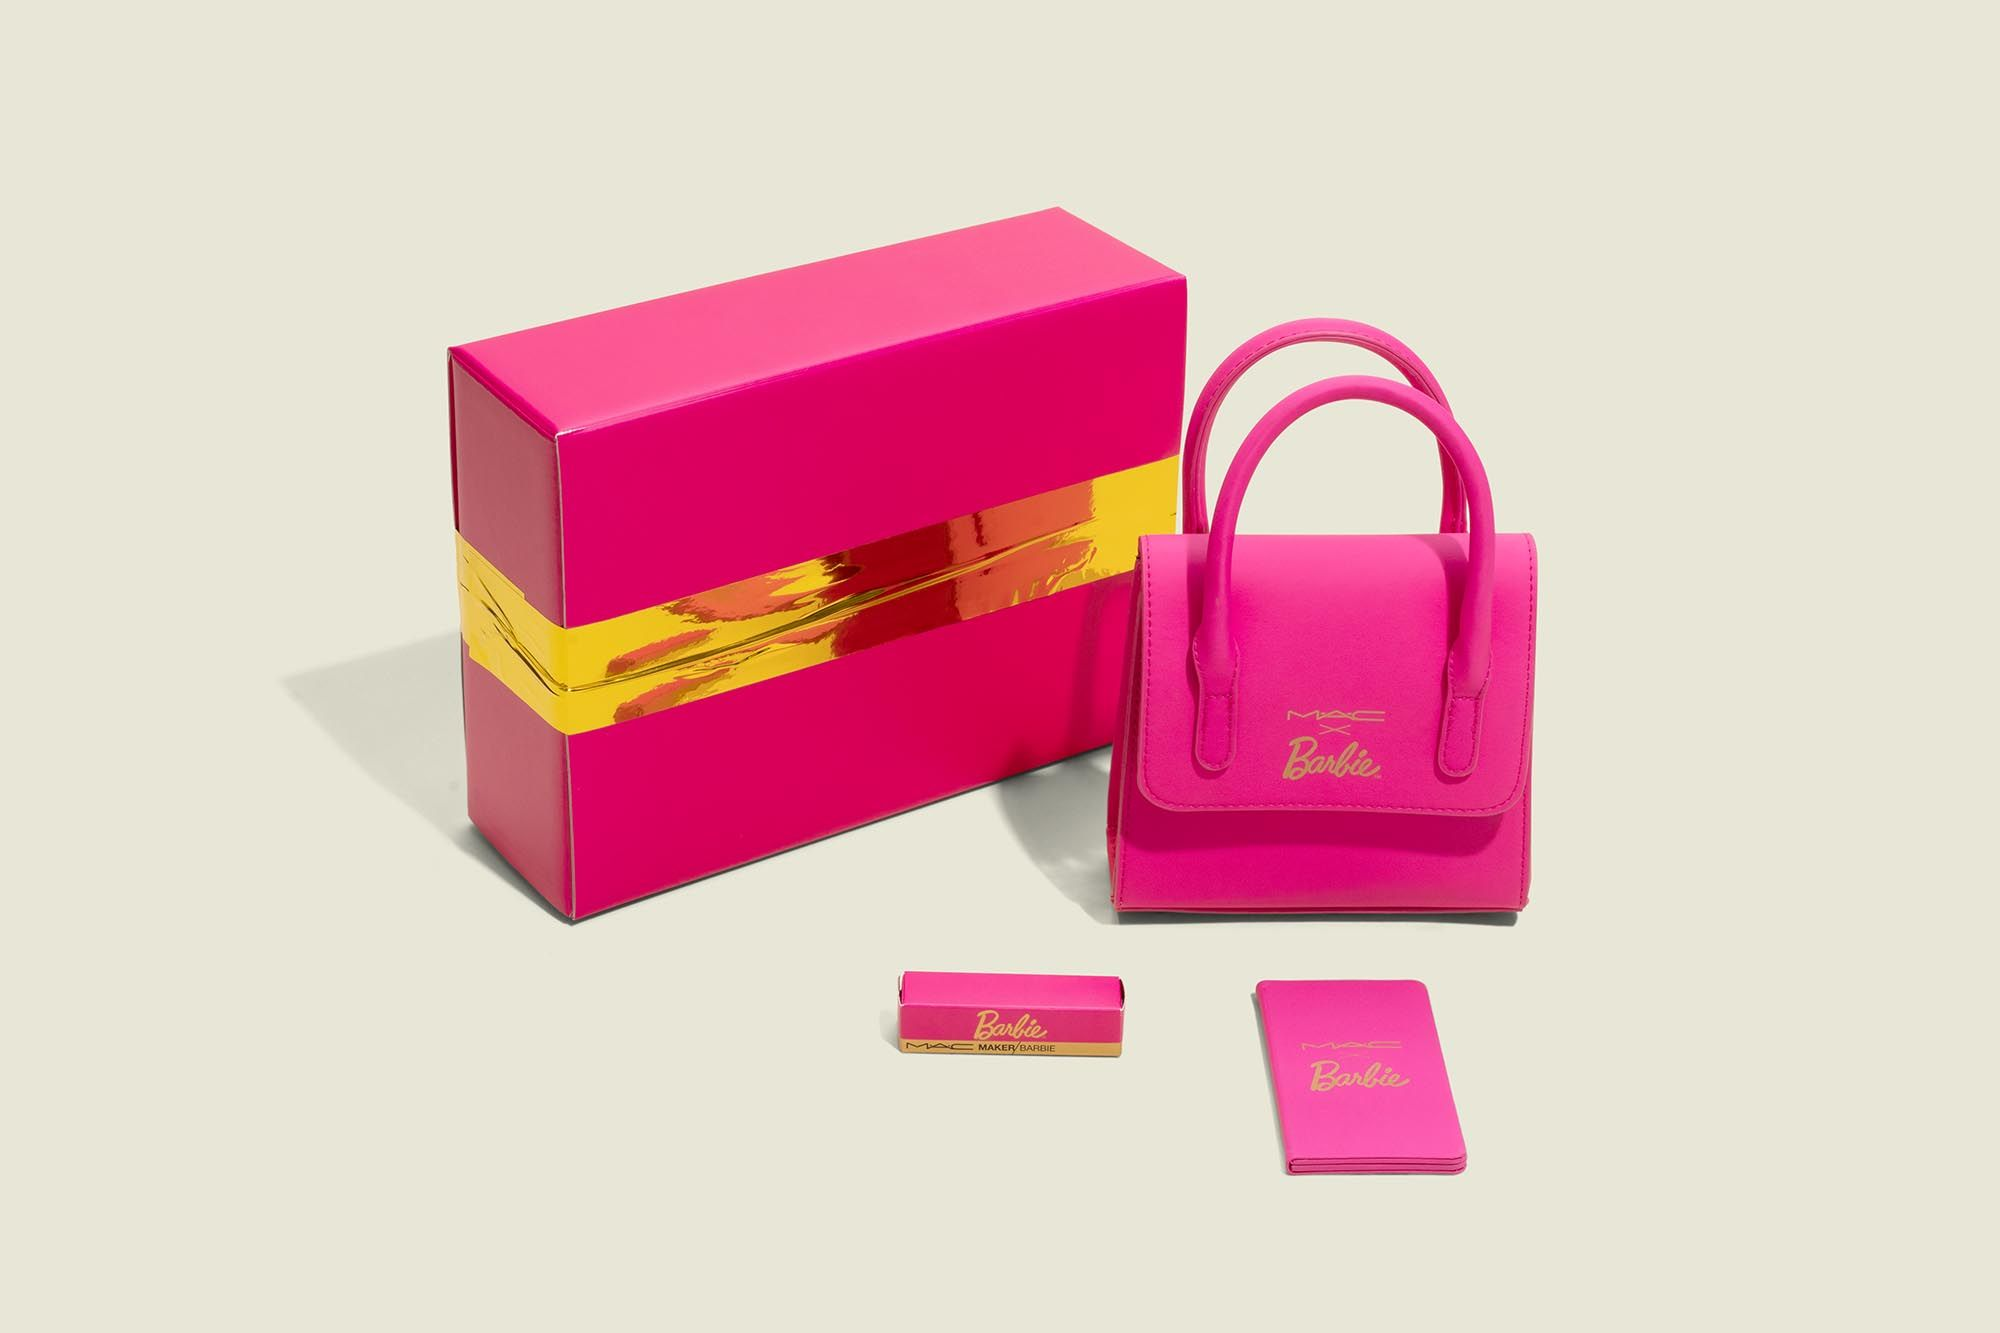 Custom packaging with handbag and beauty products